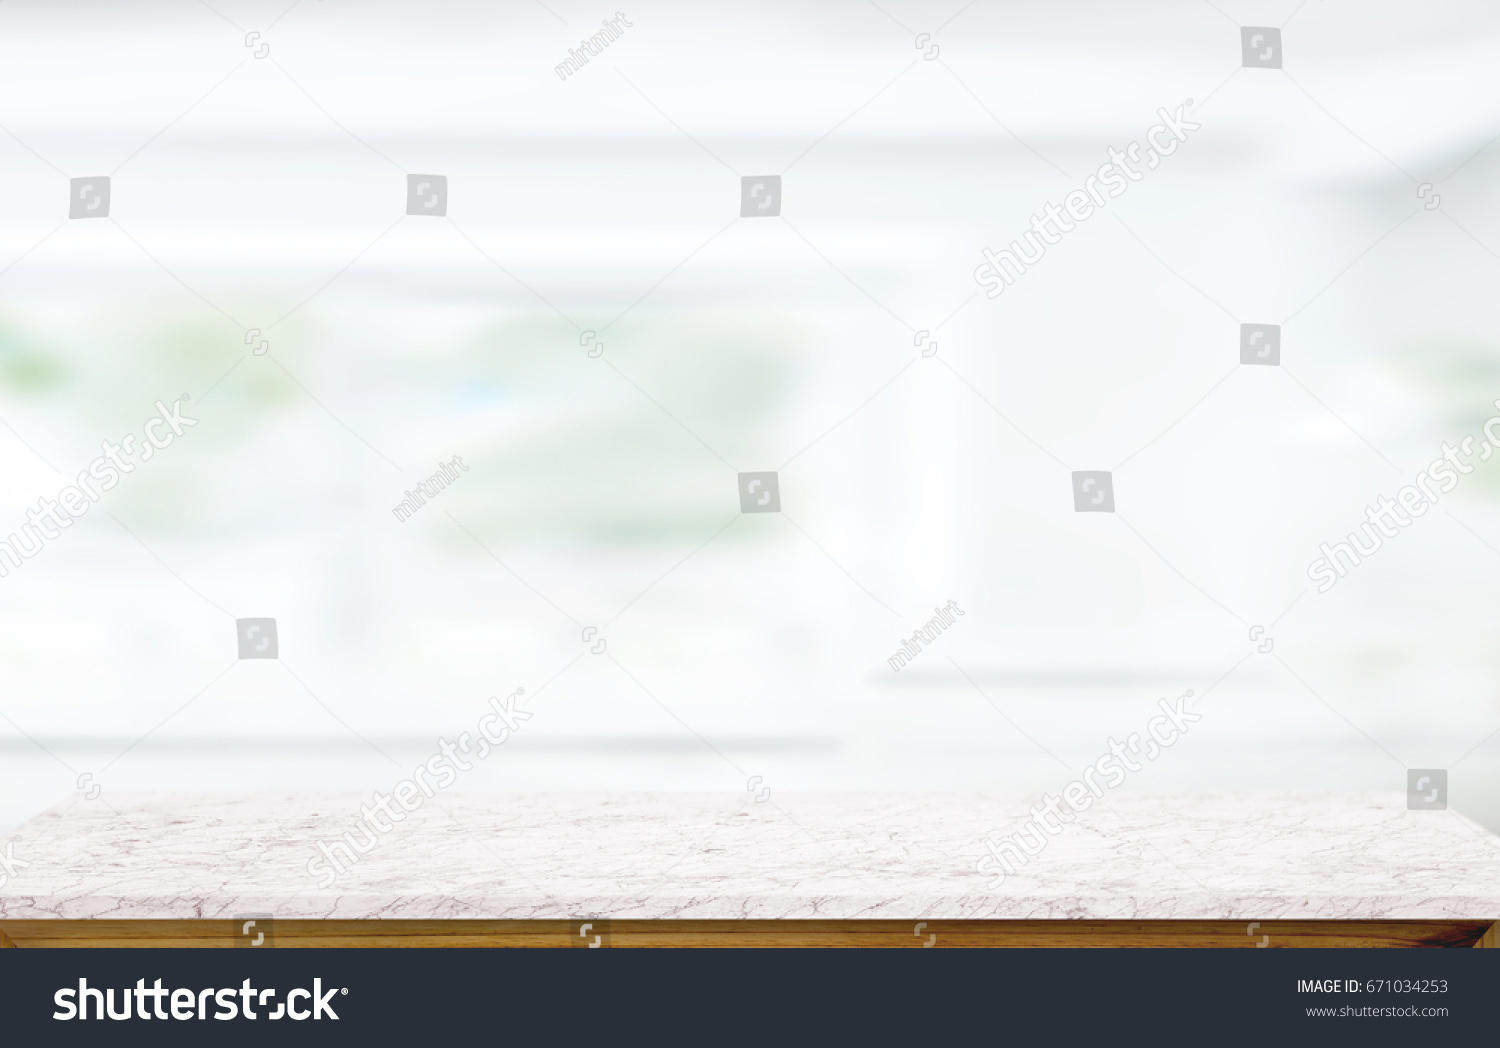 white marble table top. white marble table top on blur kitchen window background. for product or foods montage. a